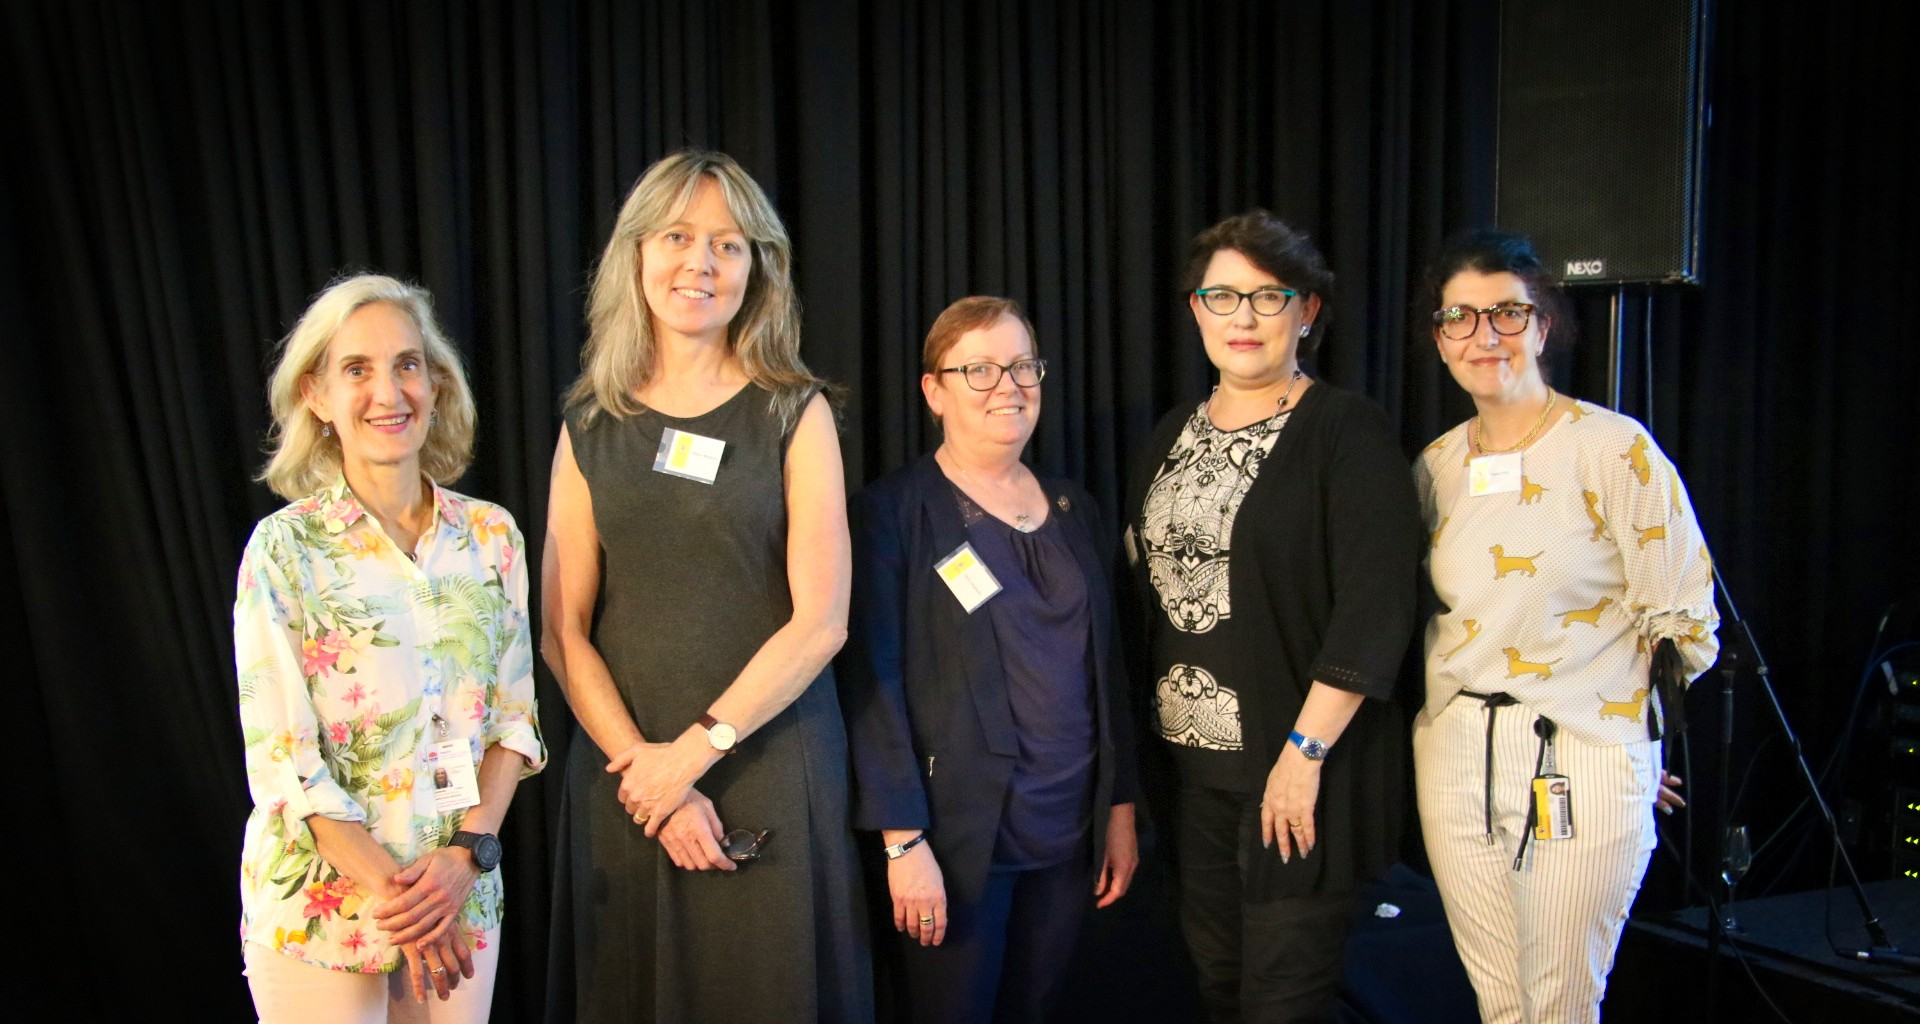 Senior HE Fellows at UNSW